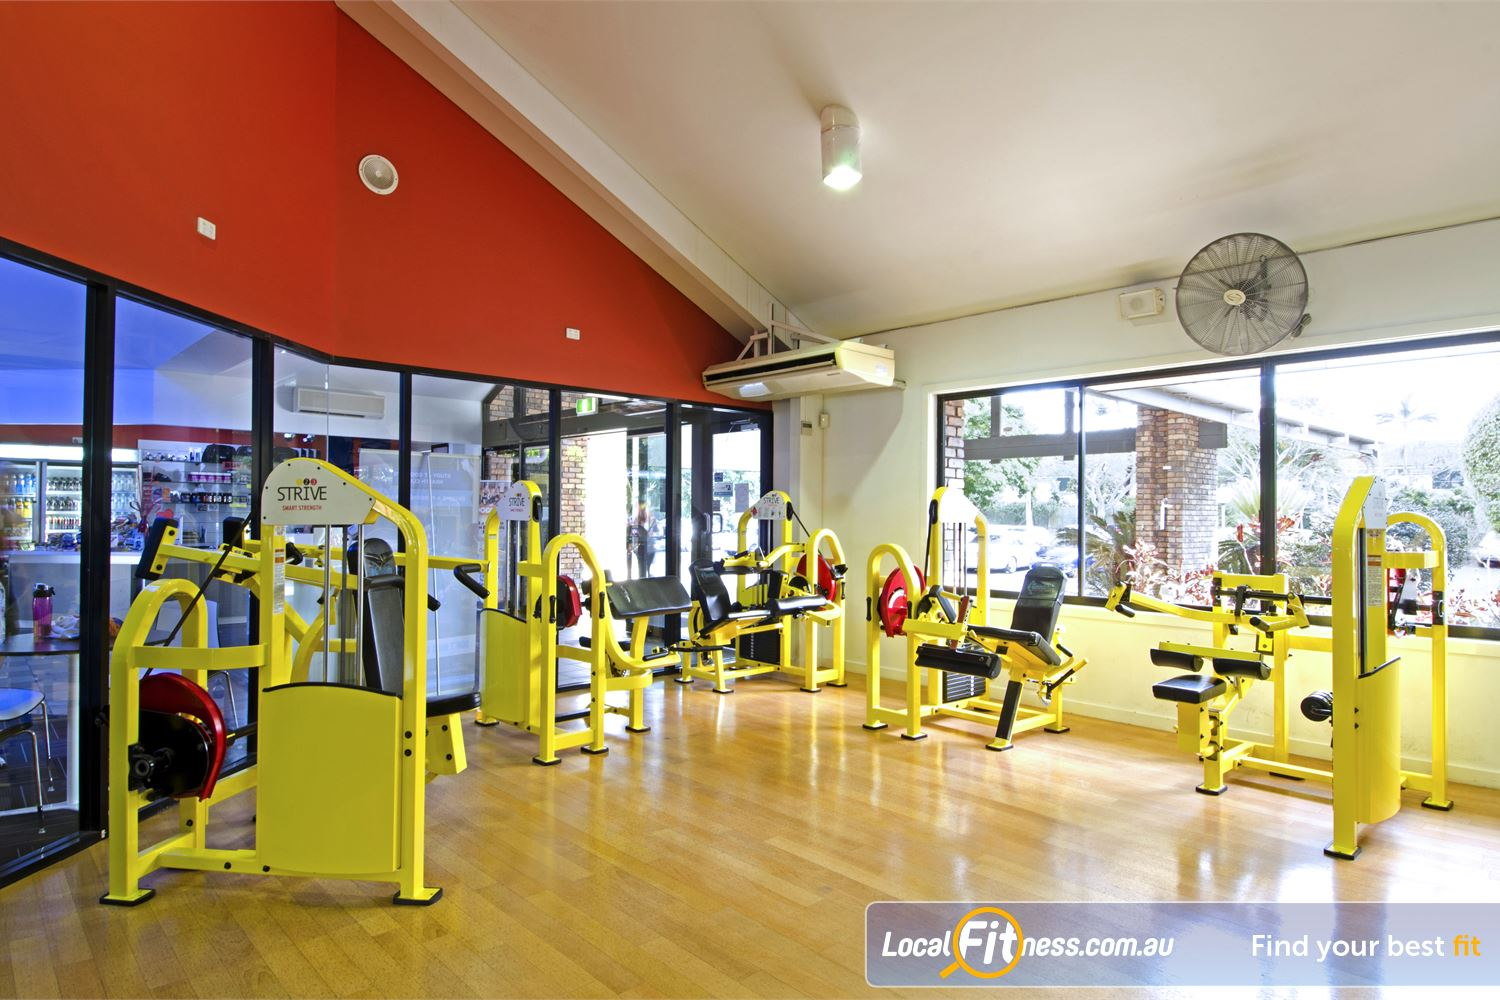 Goodlife Health Clubs Carseldine Our Carseldine gym includes the innovative 1-2-3 Strive strength series.